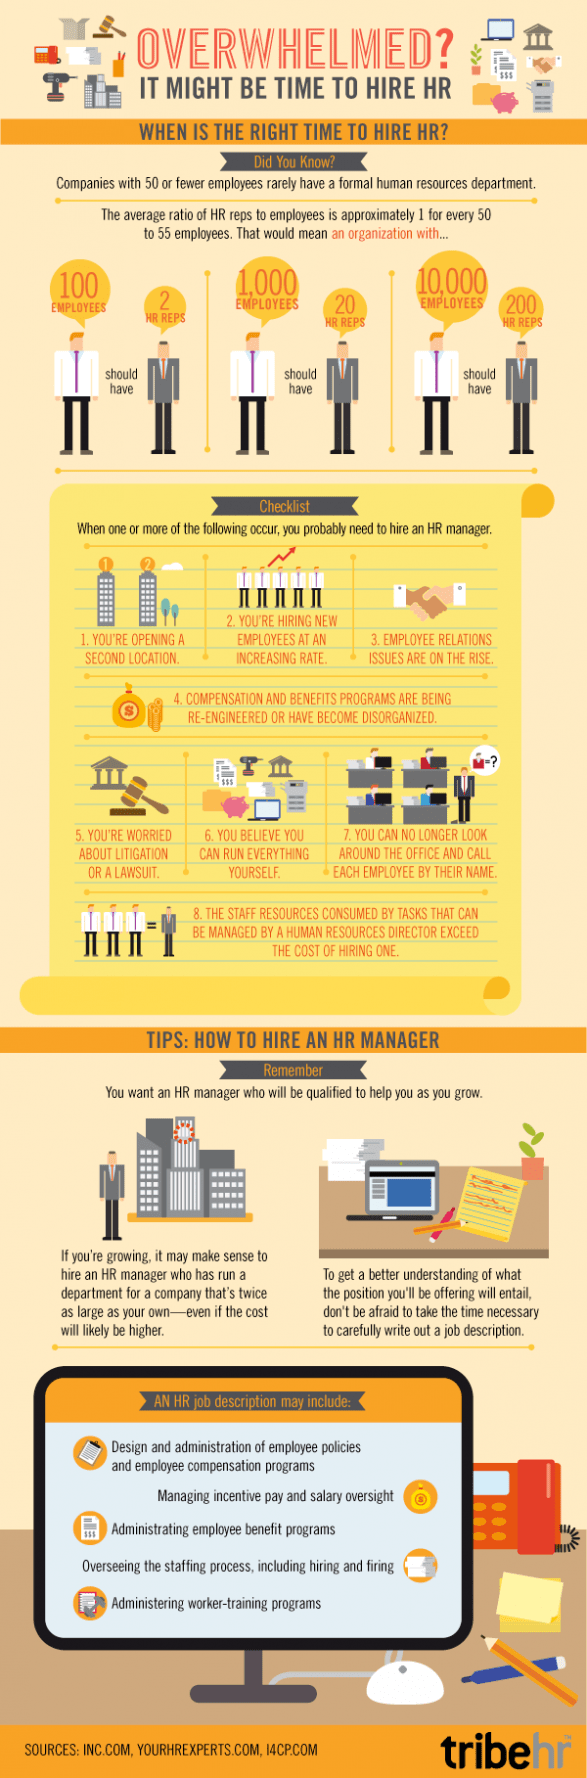 When To Hire An HR Manager